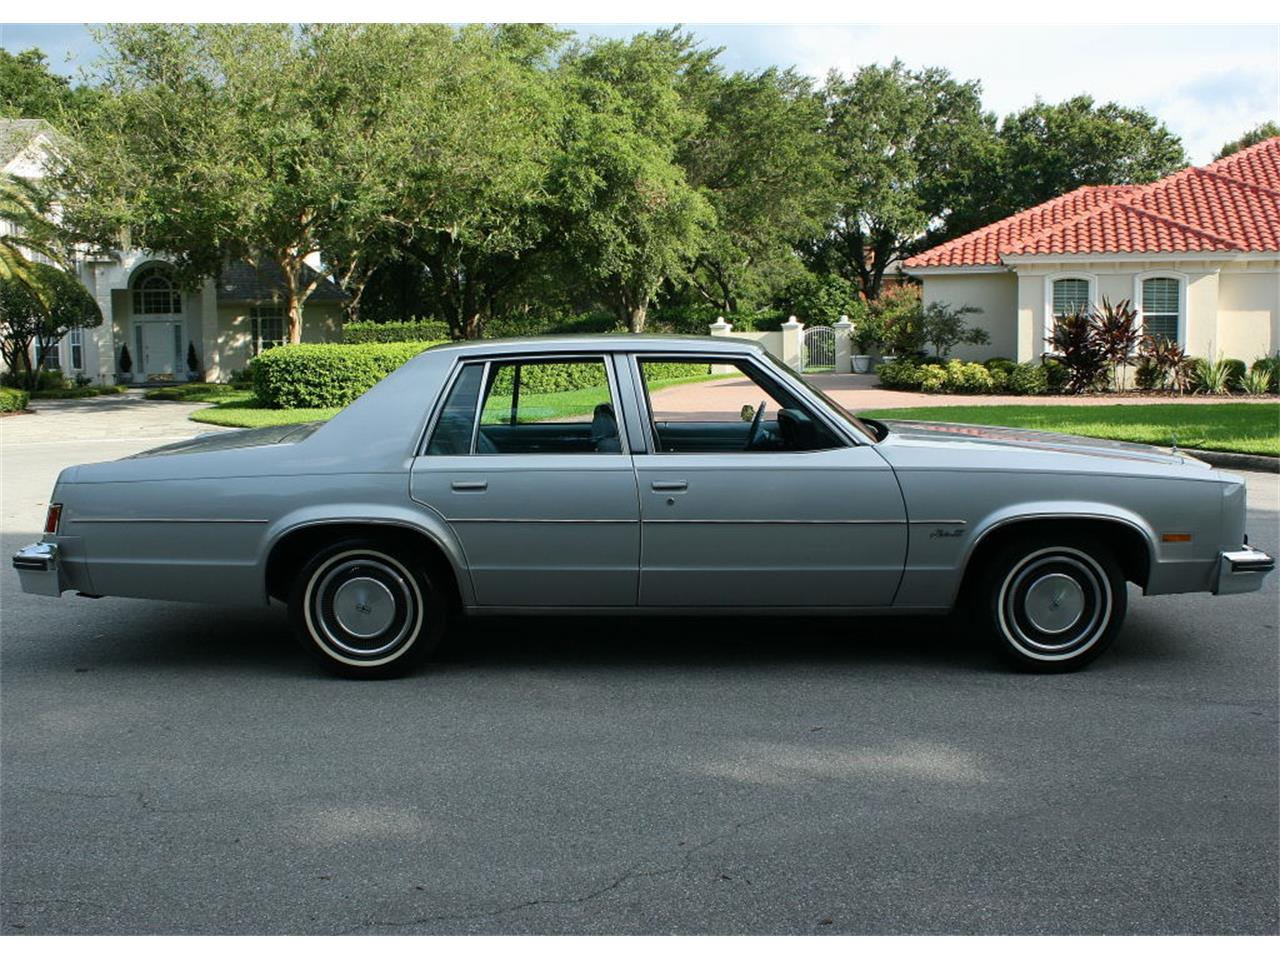 Large Picture of 1977 Oldsmobile Delta 88 located in Florida - $12,500.00 Offered by MJC Classic Cars - LFEK